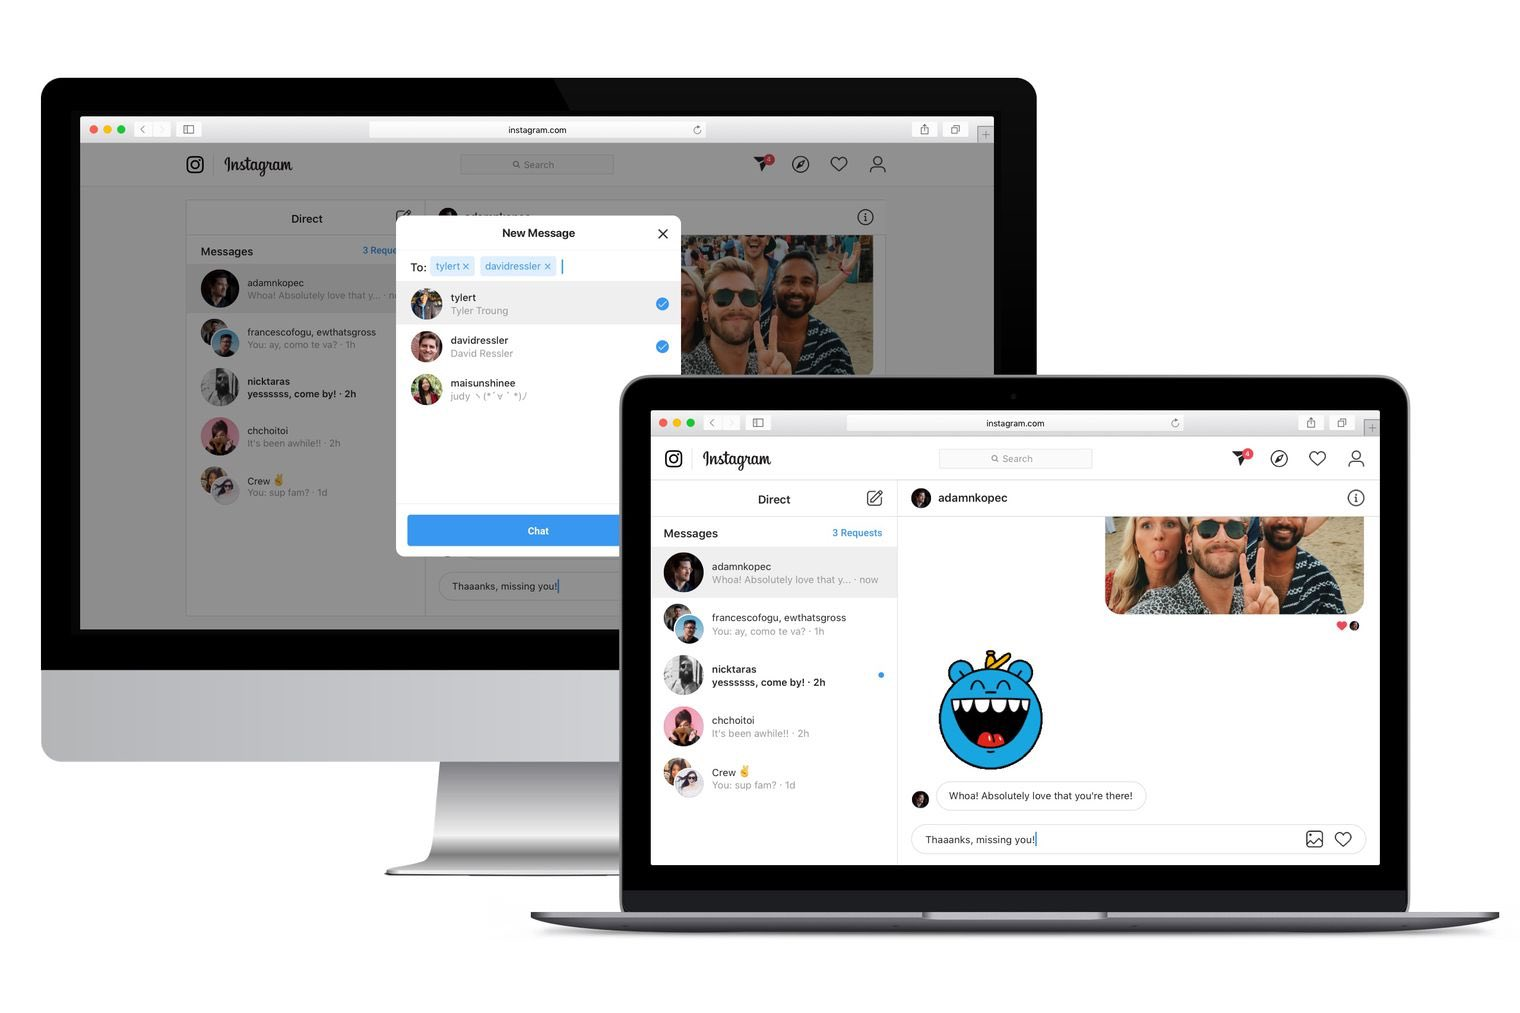 instagram direct messaging on the web